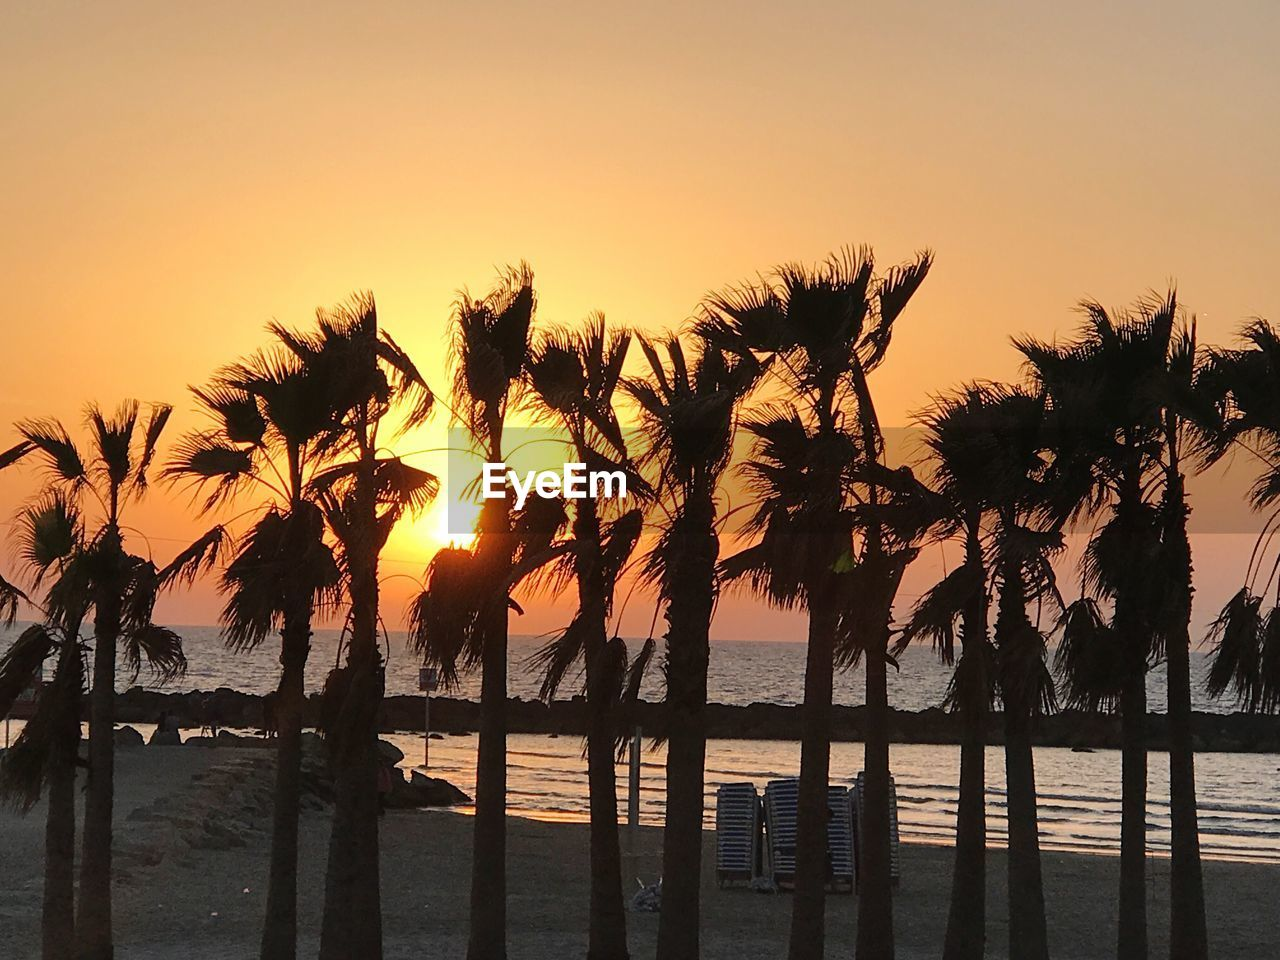 sunset, tree, beauty in nature, scenics, nature, tranquil scene, tranquility, sea, silhouette, palm tree, water, no people, outdoors, beach, sky, growth, horizon over water, day